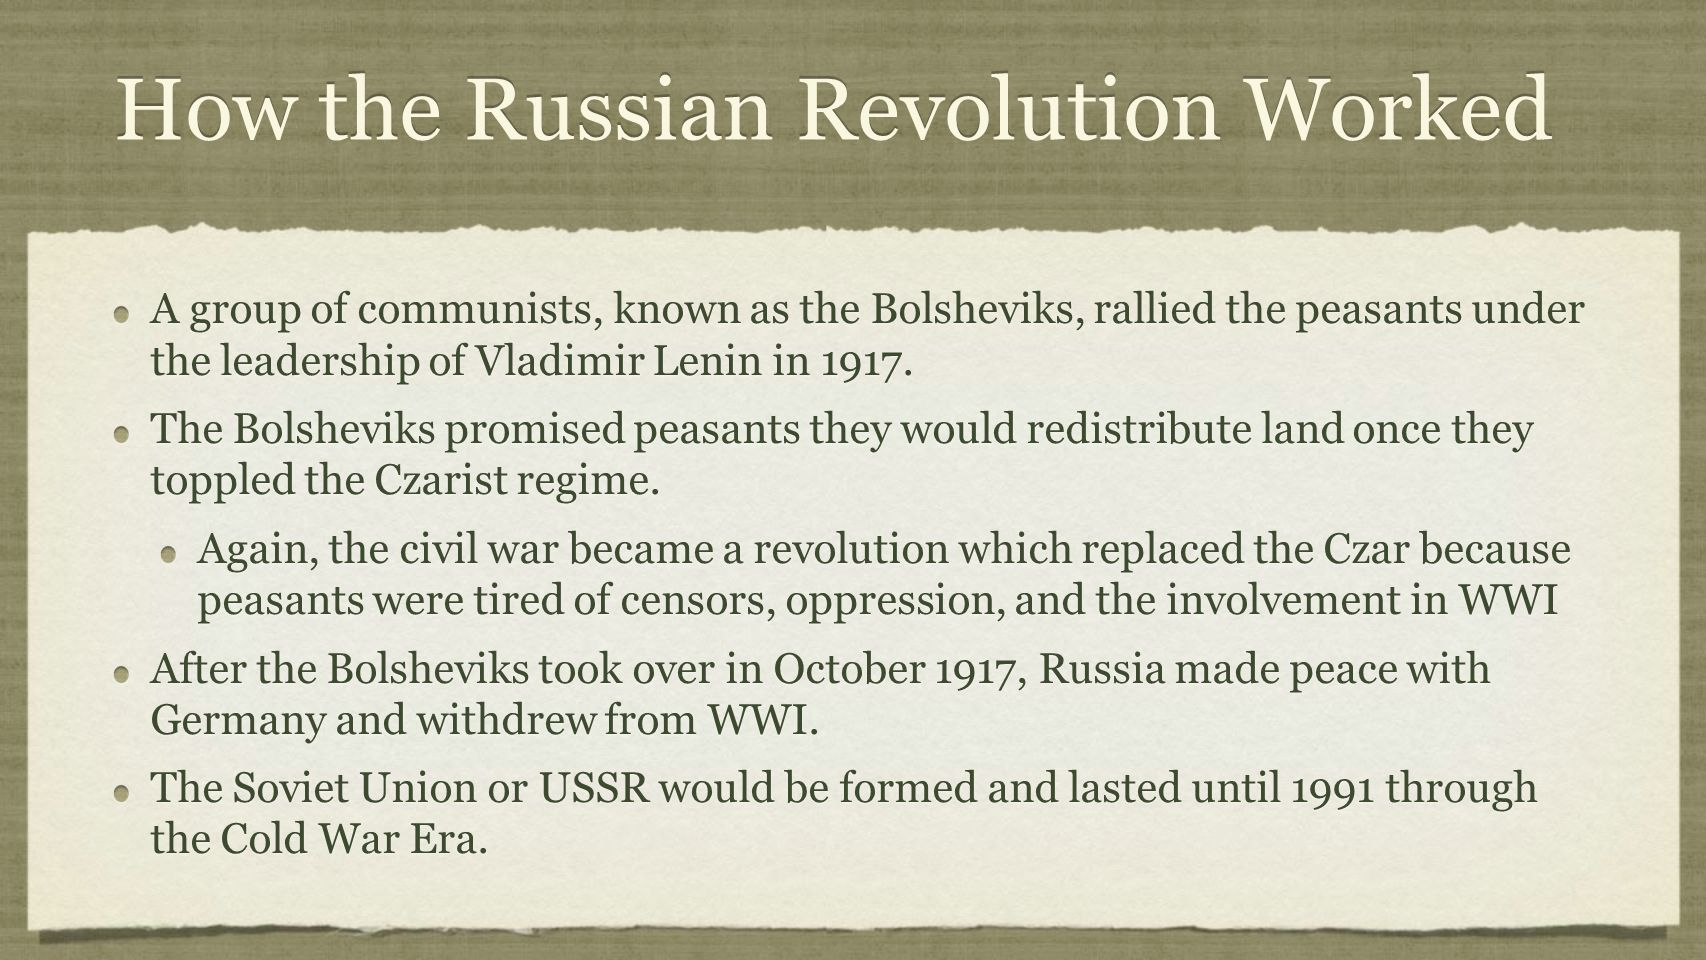 How the Russian Revolution Worked A group of communists, known as the Bolsheviks, rallied the peasants under the leadership of Vladimir Lenin in 1917.